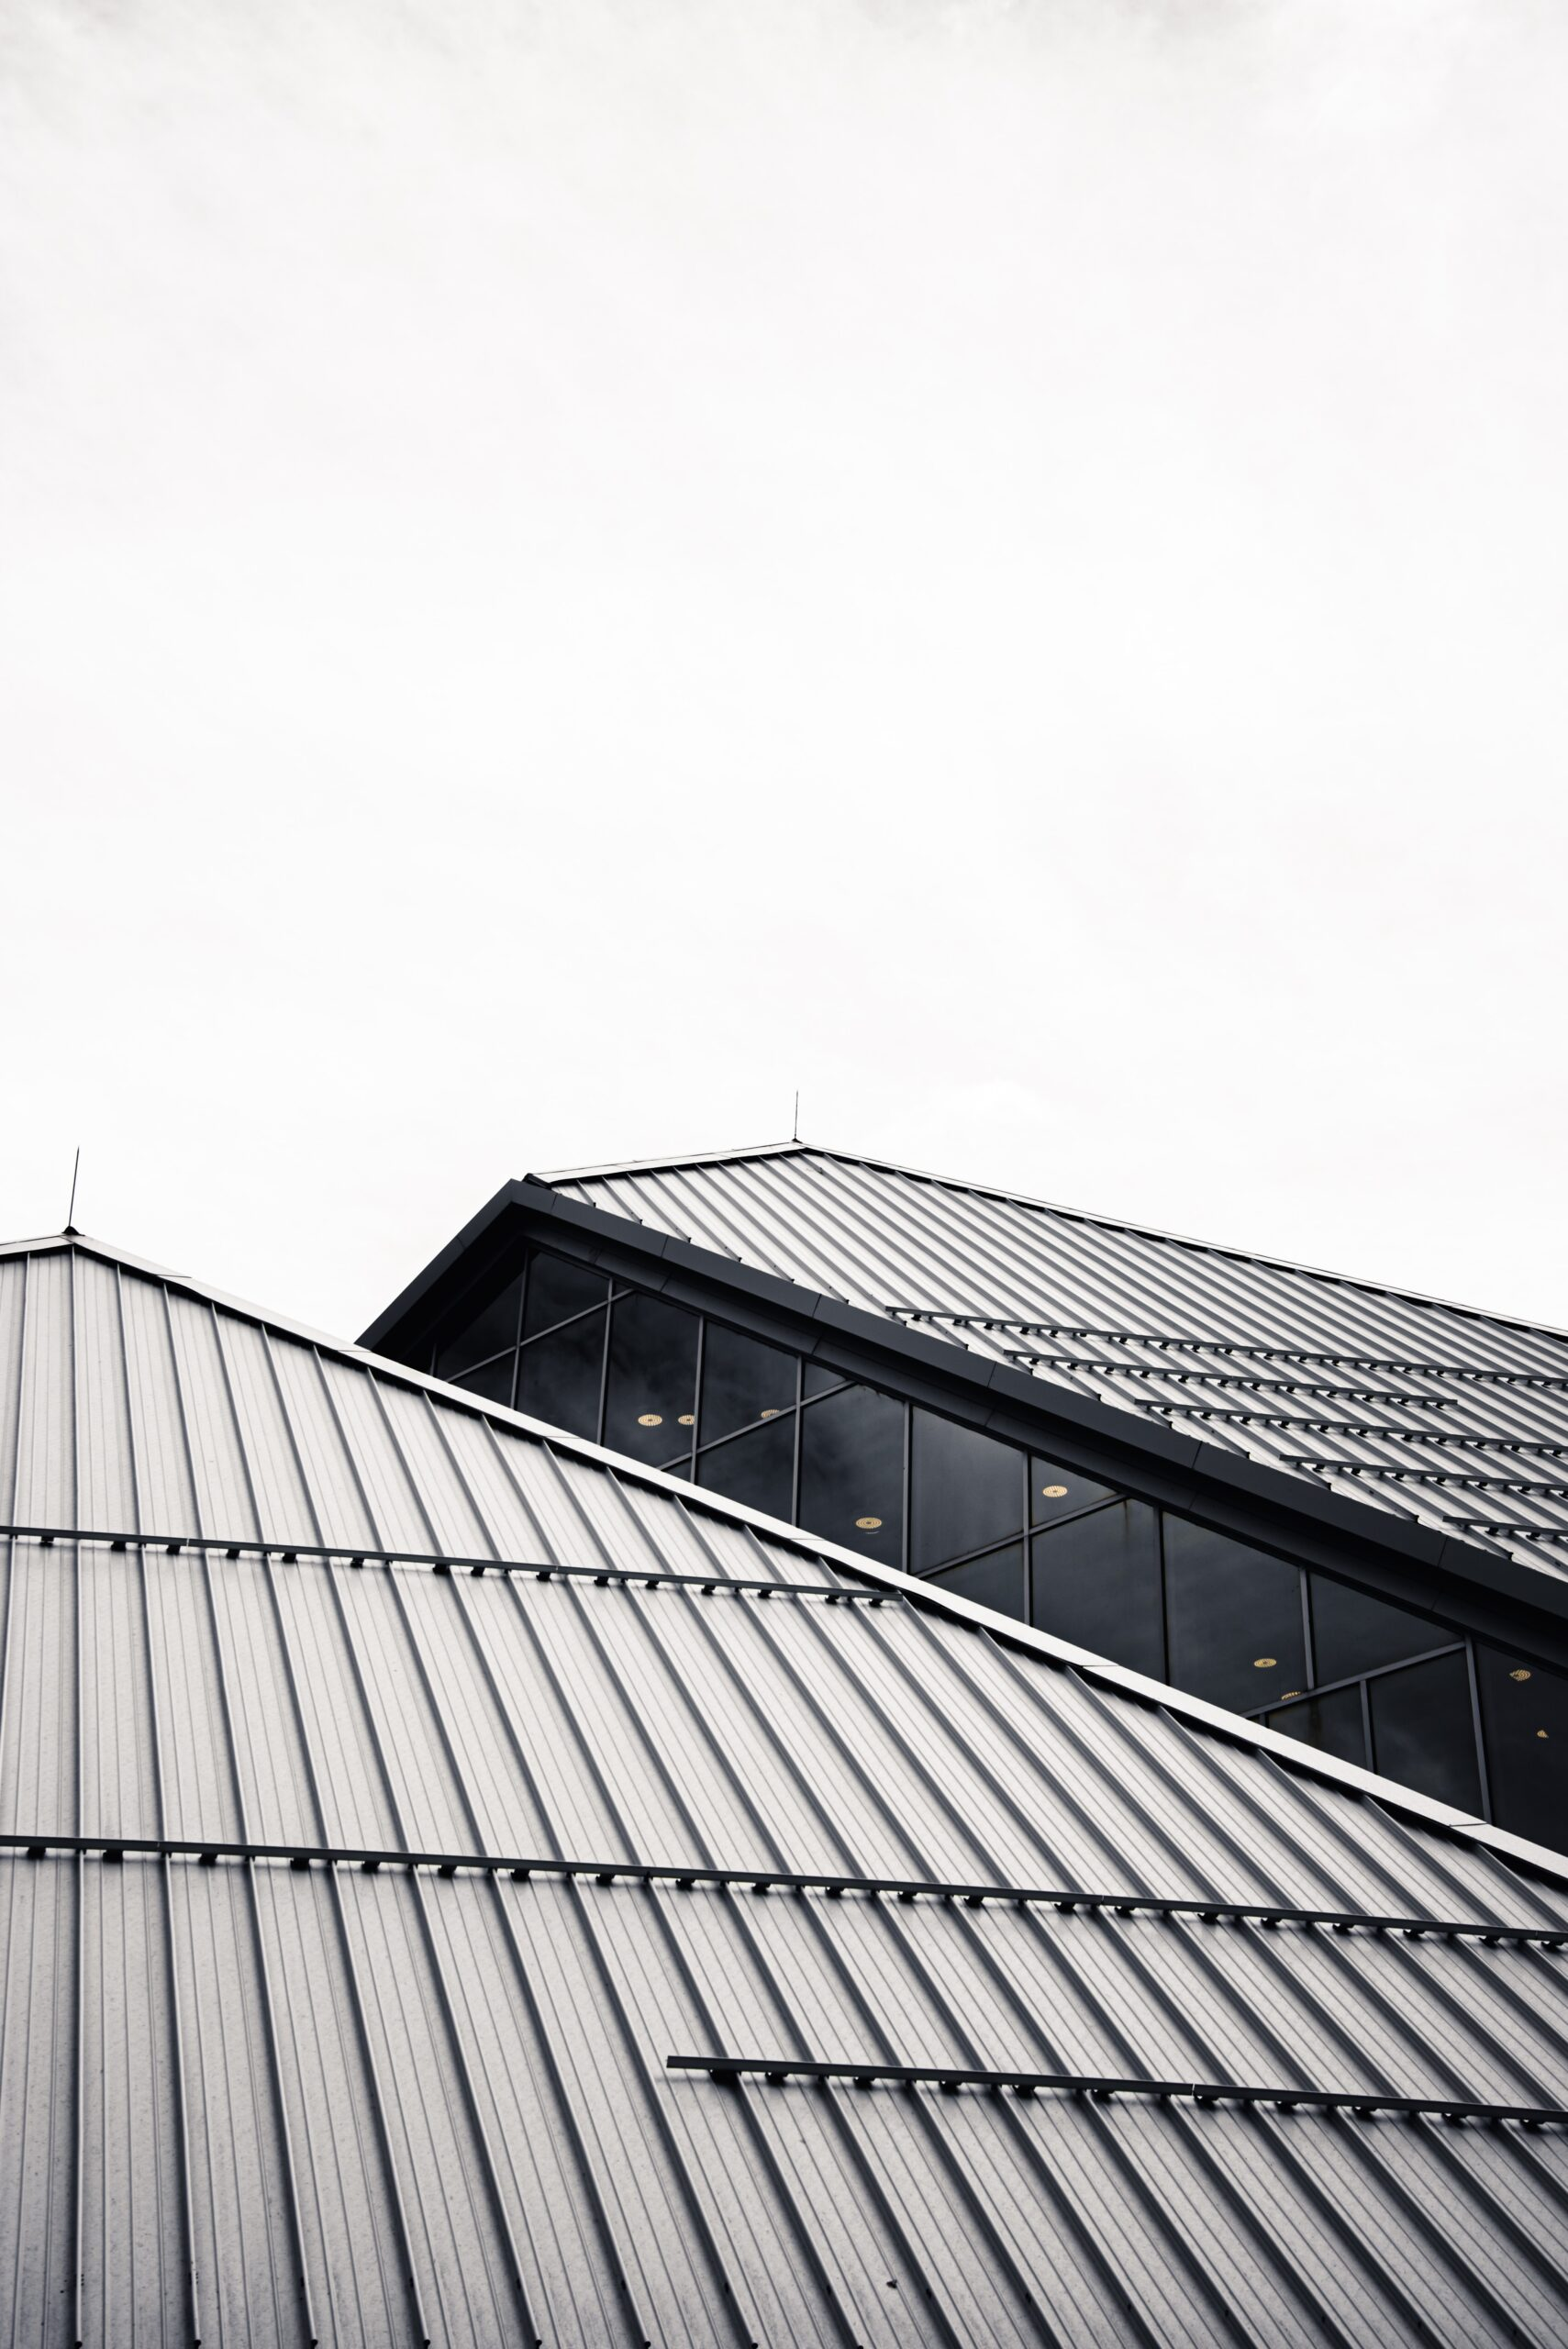 bipv make architecturally integrated photovoltaics